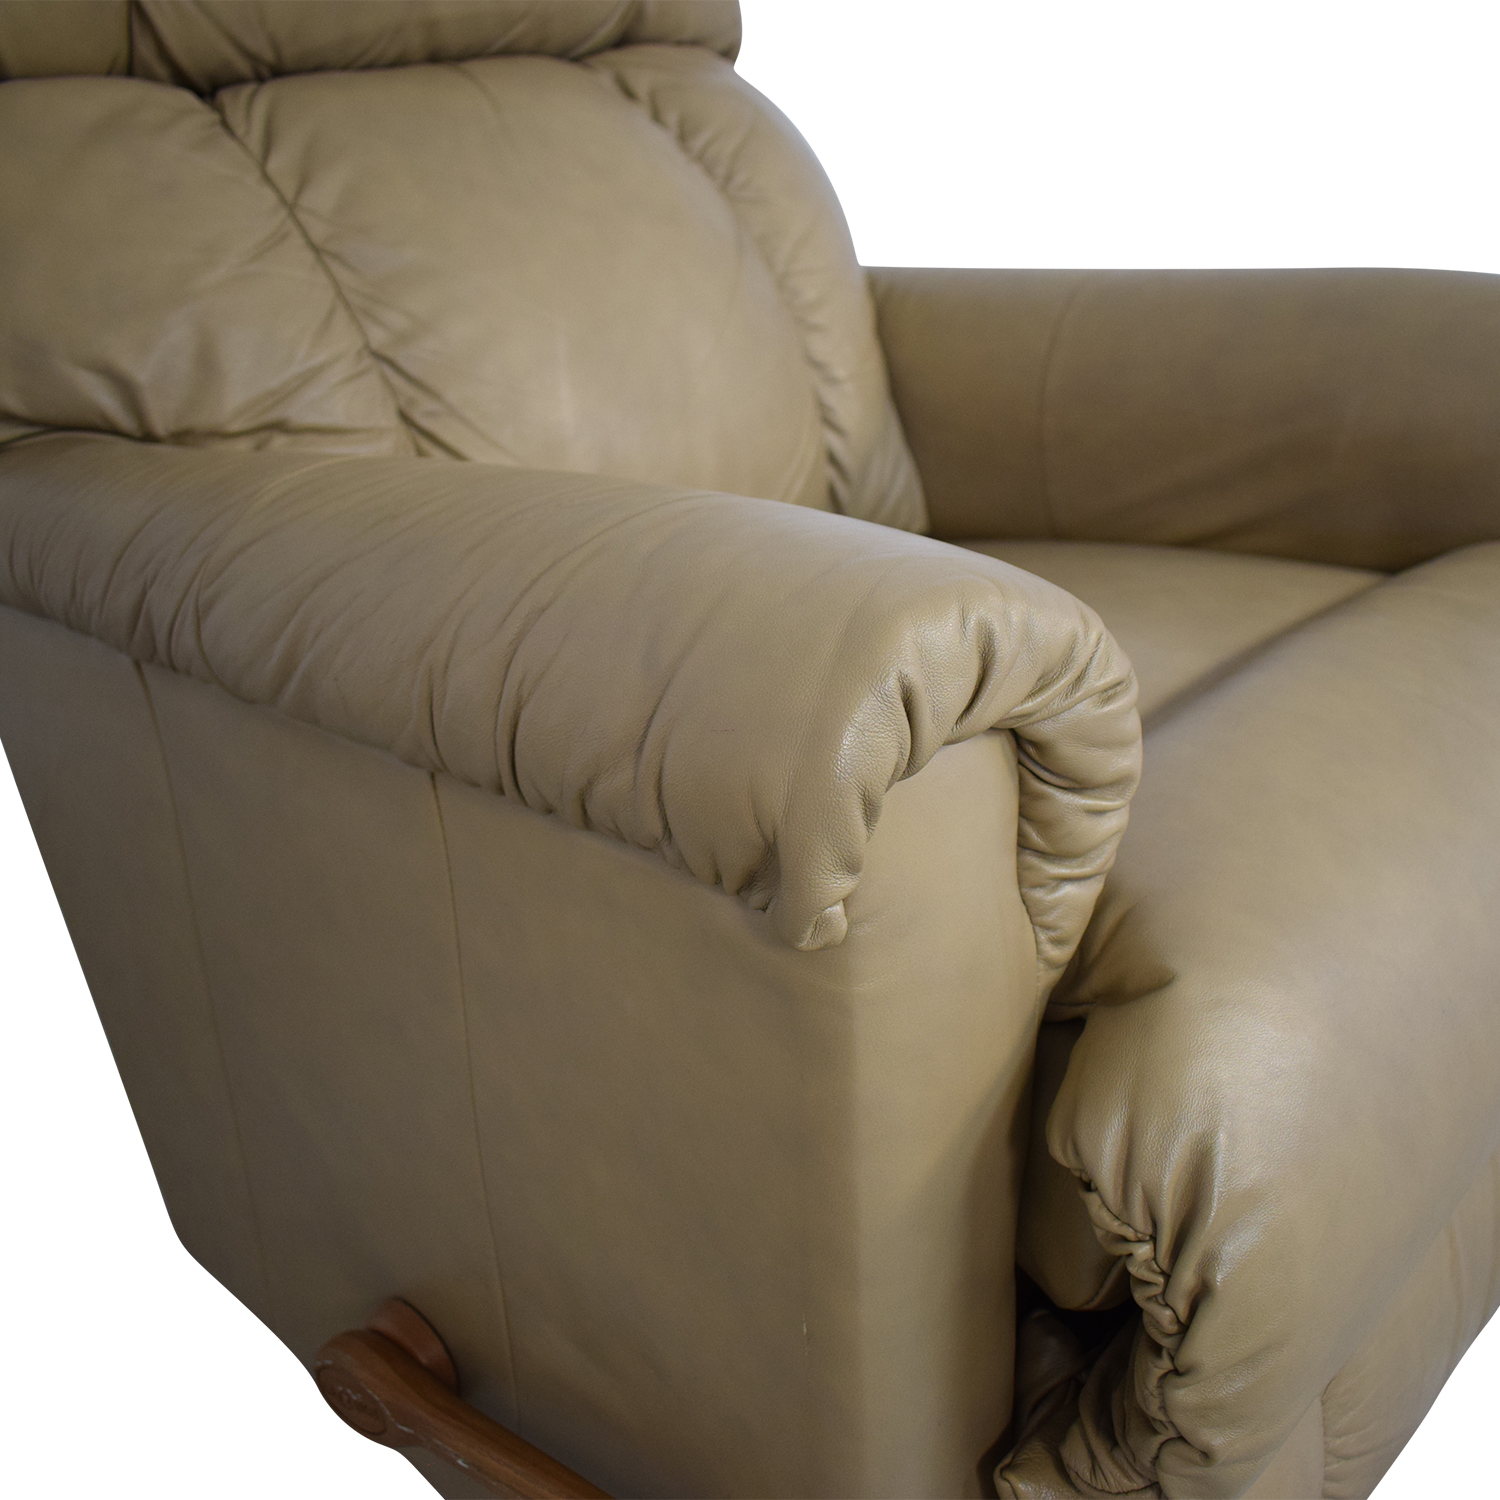 shop La-Z-Boy La-Z-Boy Recliner online